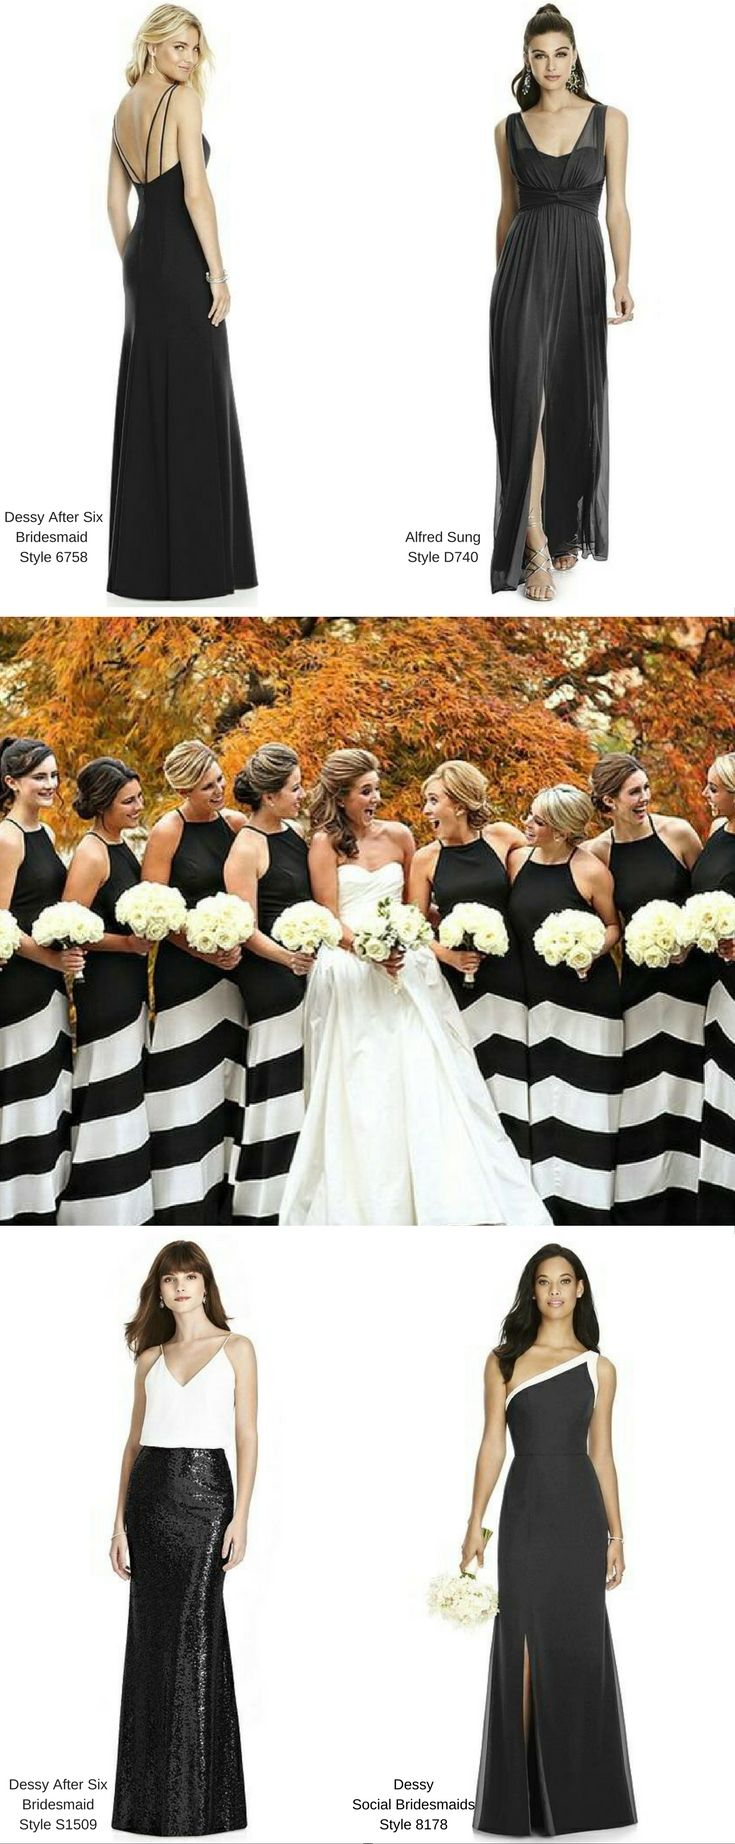 The dessy group the spot for all things bridesmaid black the dessy group the spot for all things bridesmaid black bridesmaid dresses weddings pinterest black bridesmaids wedding pergola and weddings ombrellifo Choice Image